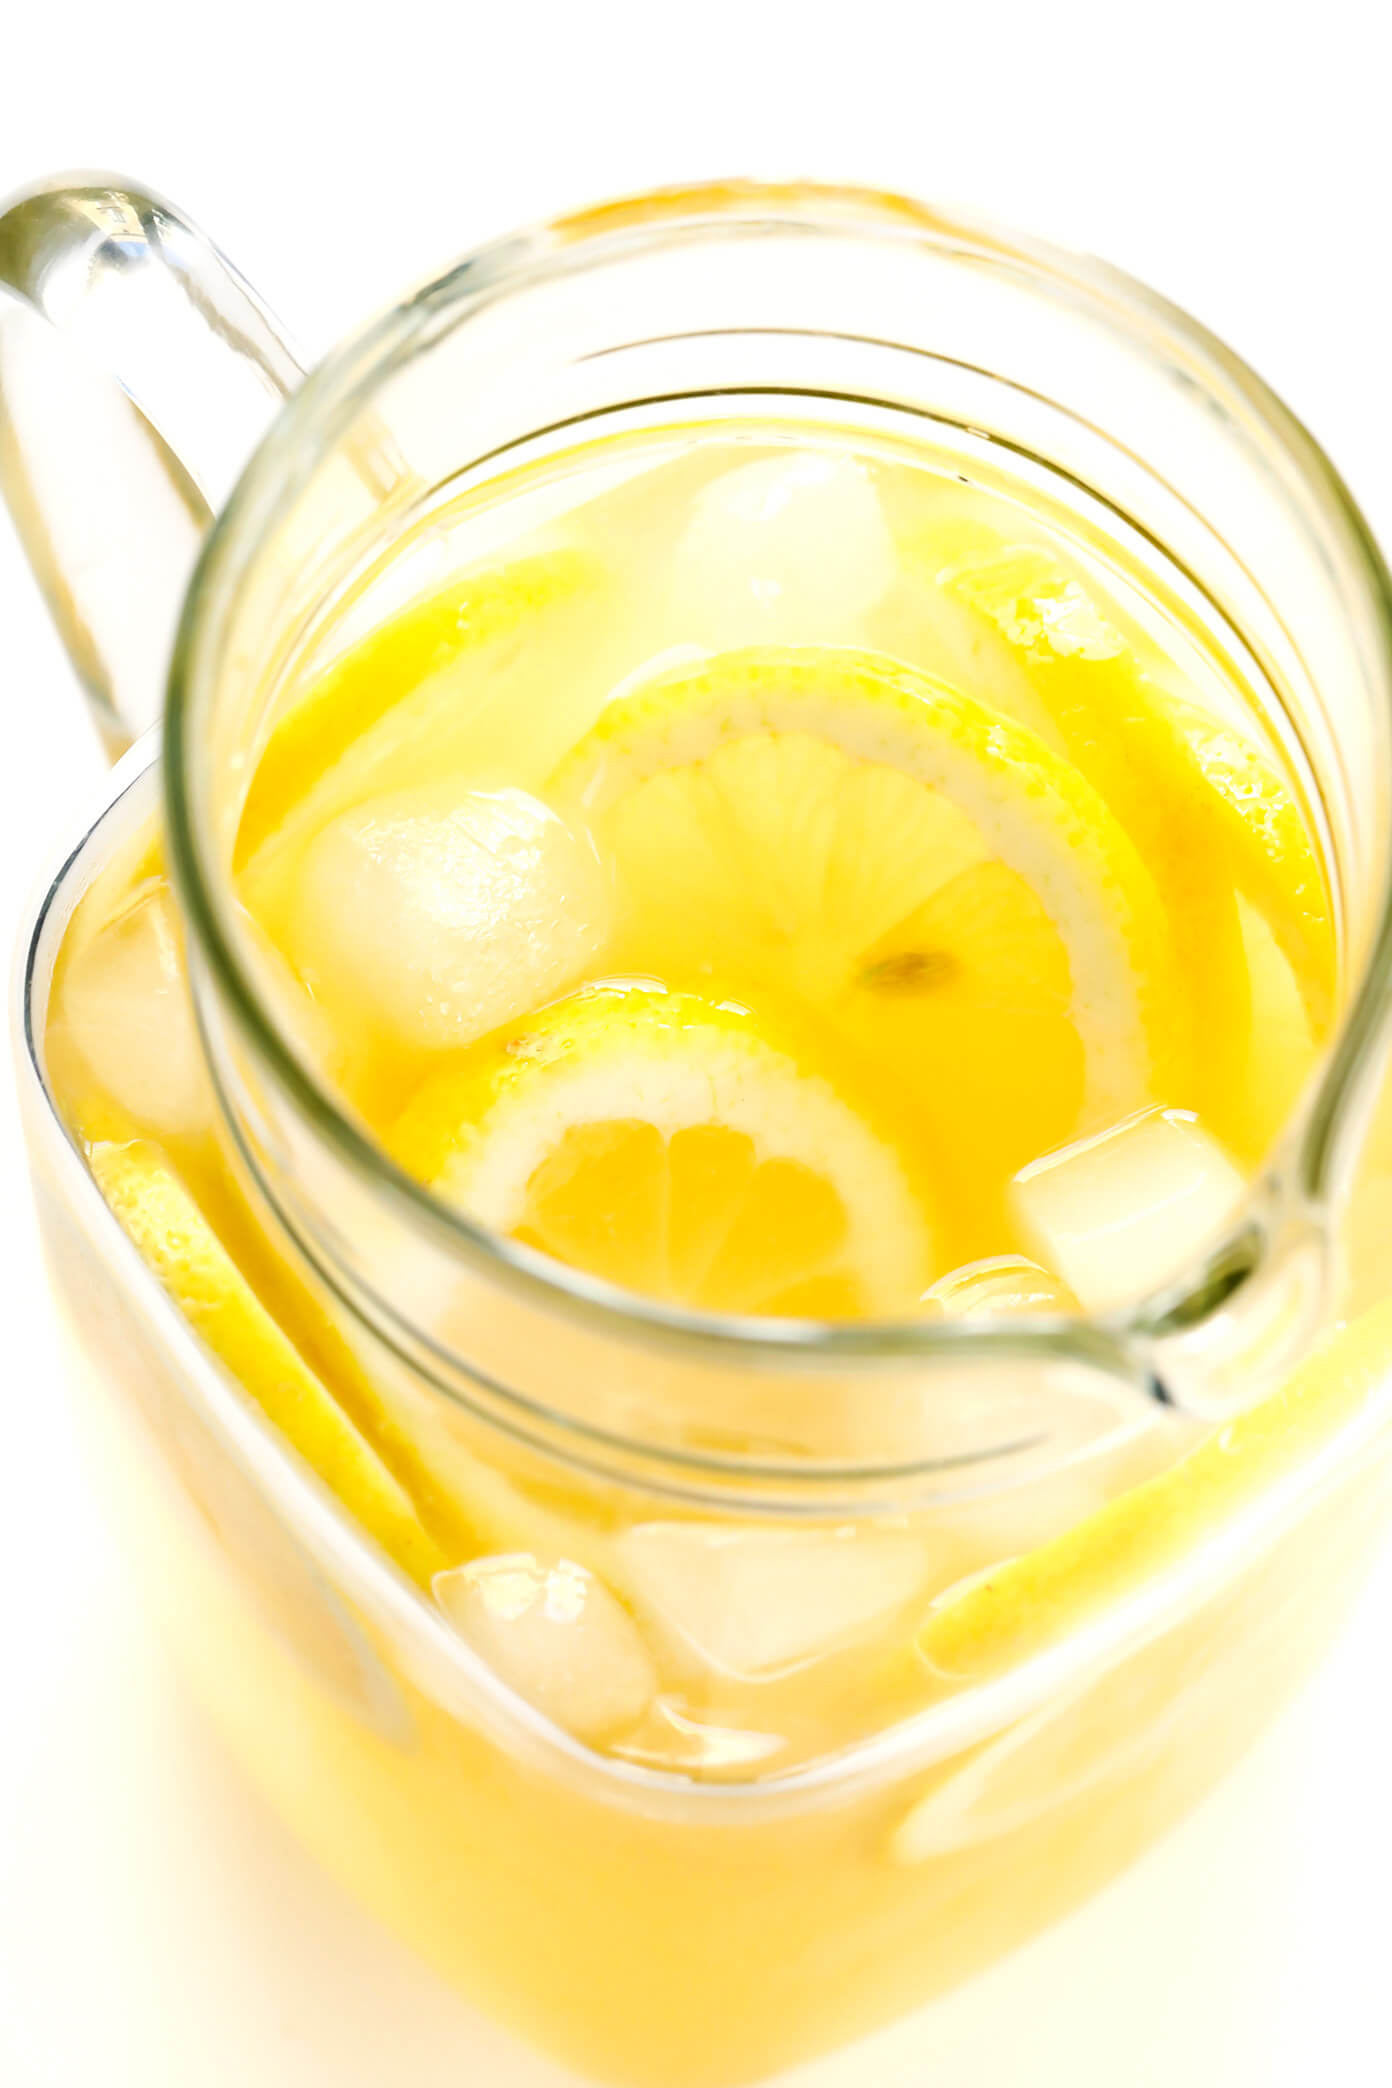 Homemade Lemonade Pitcher